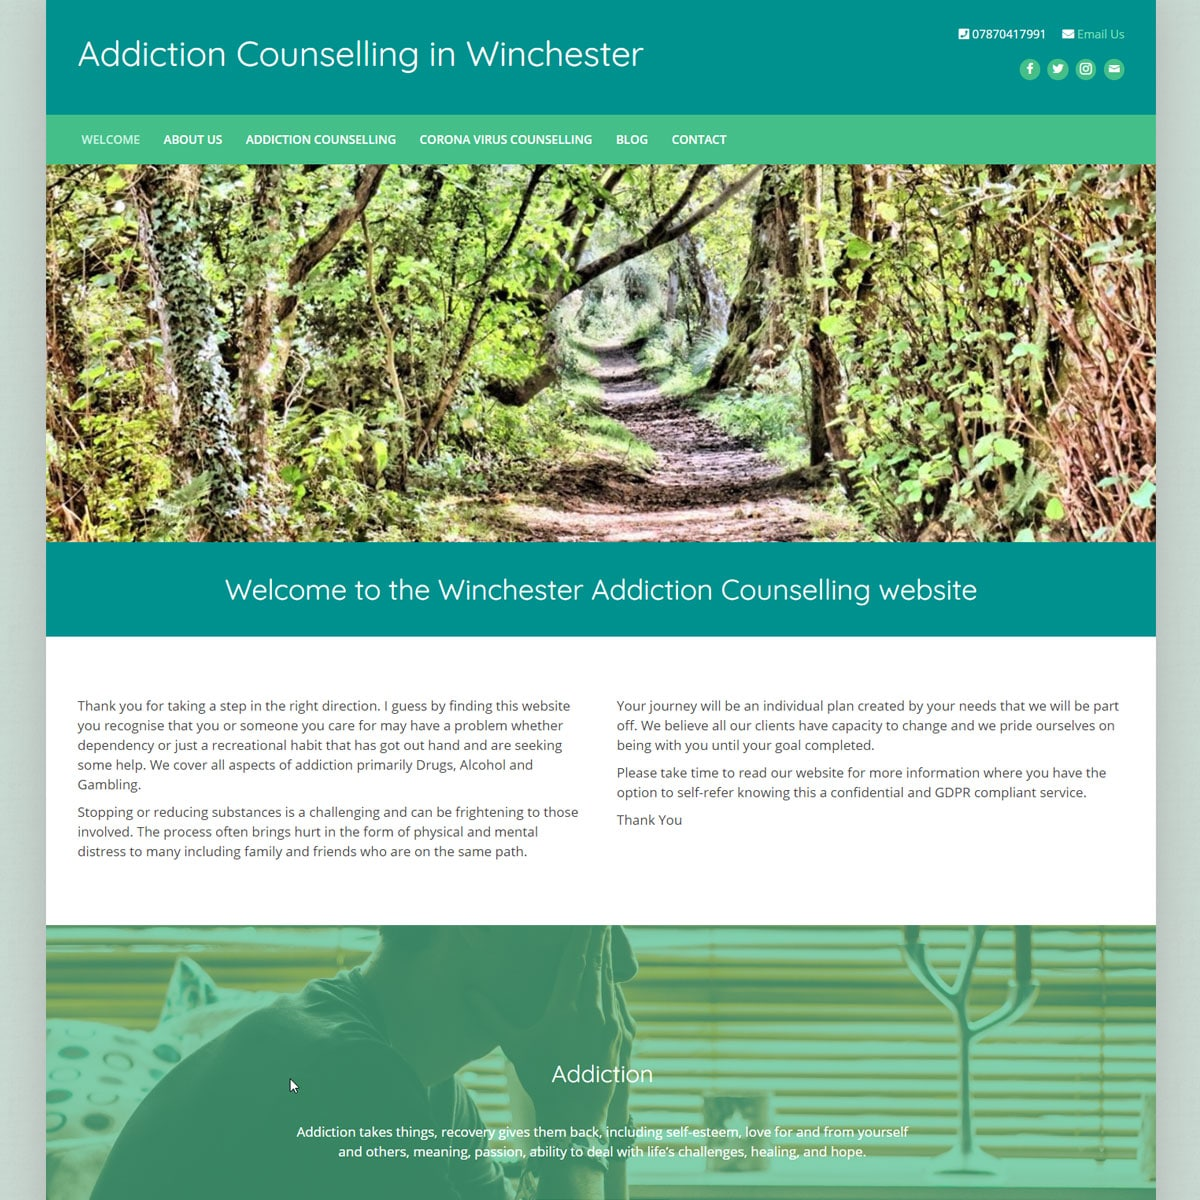 addictioncounsellinginwinchester